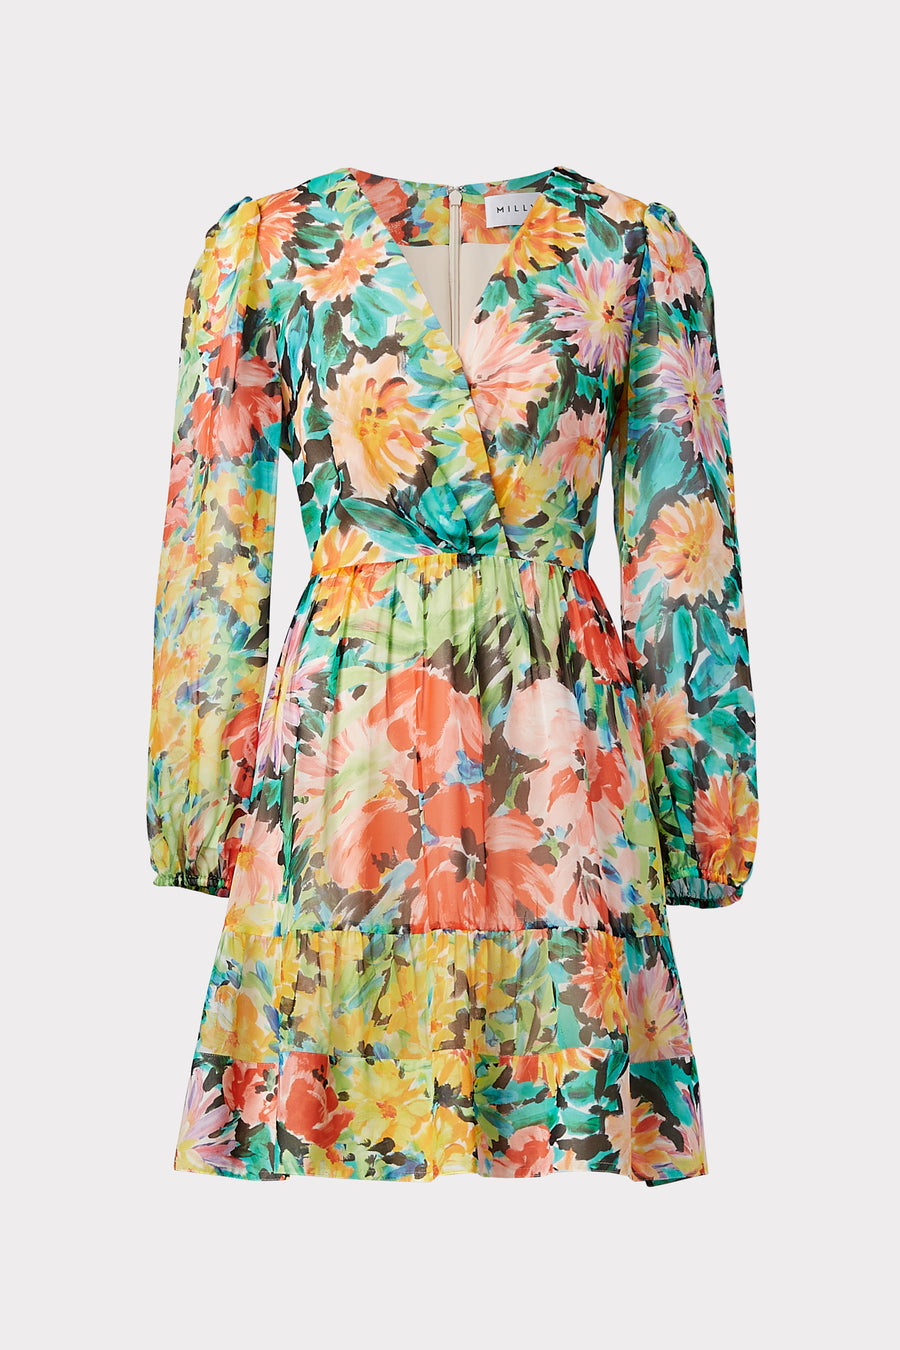 Mia Garden Floral Silk Chiffon Closed Back Dress